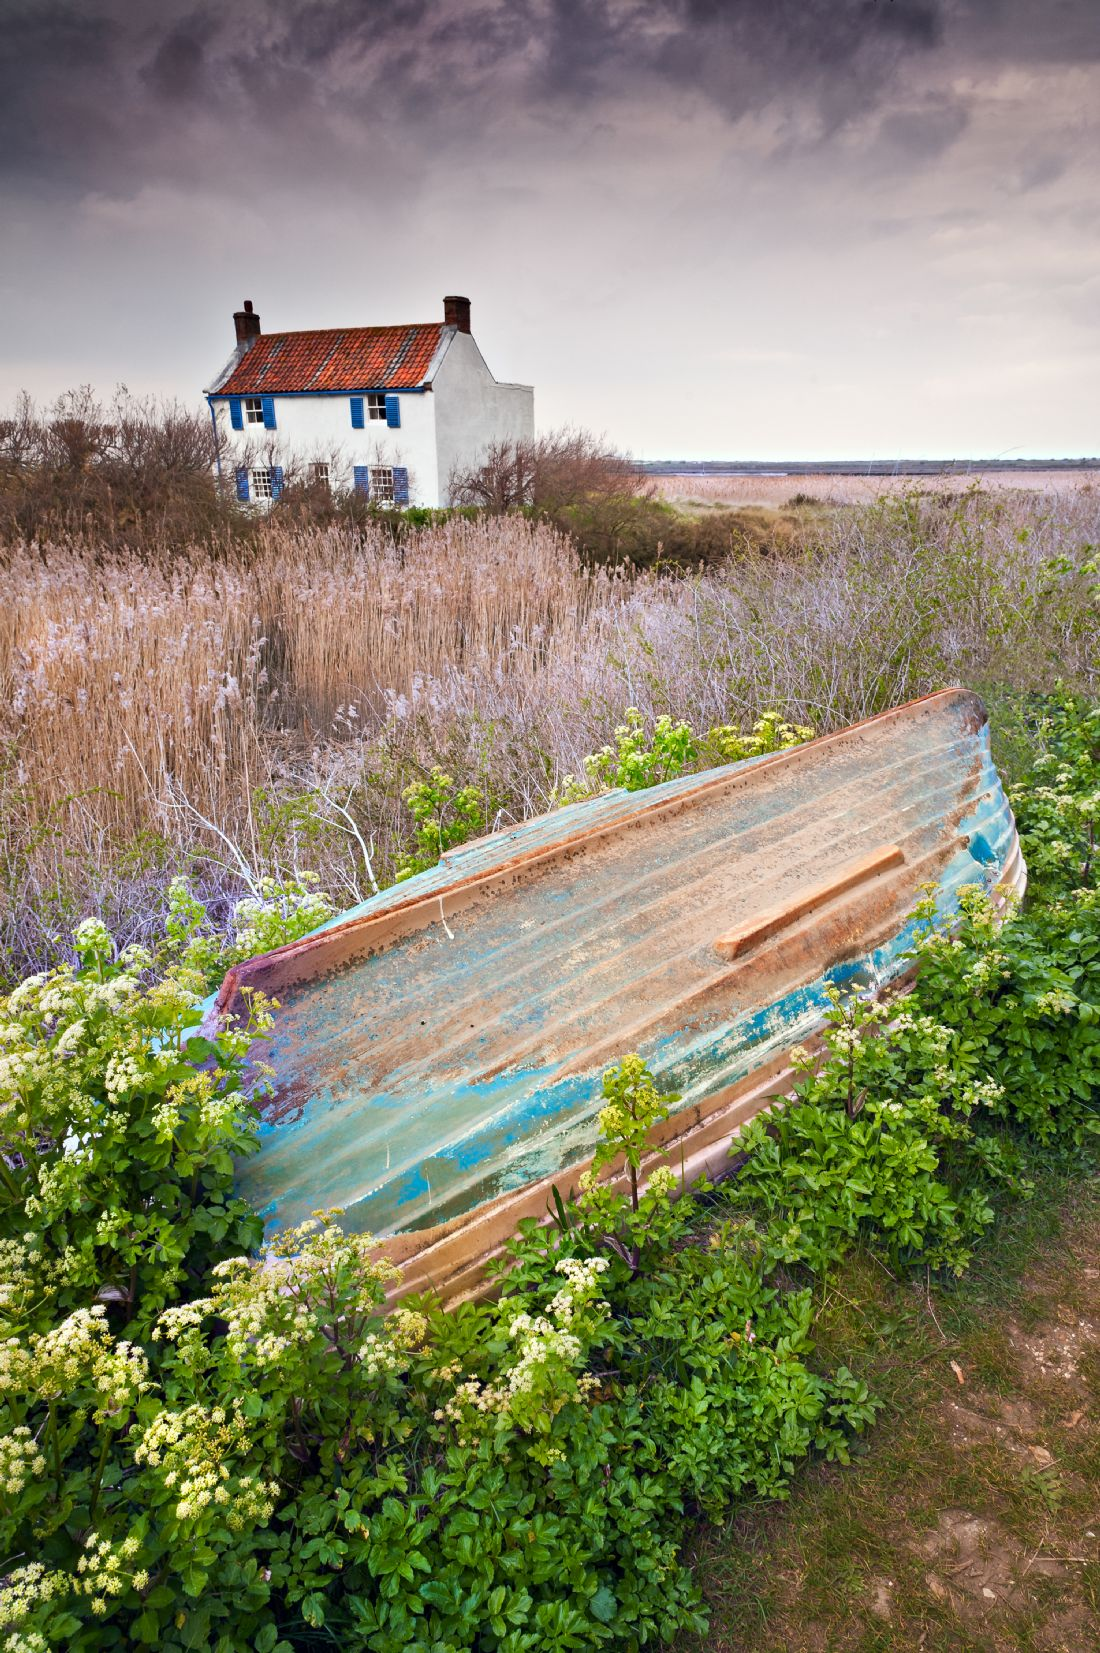 Stephen Mole | White house at Brancaster